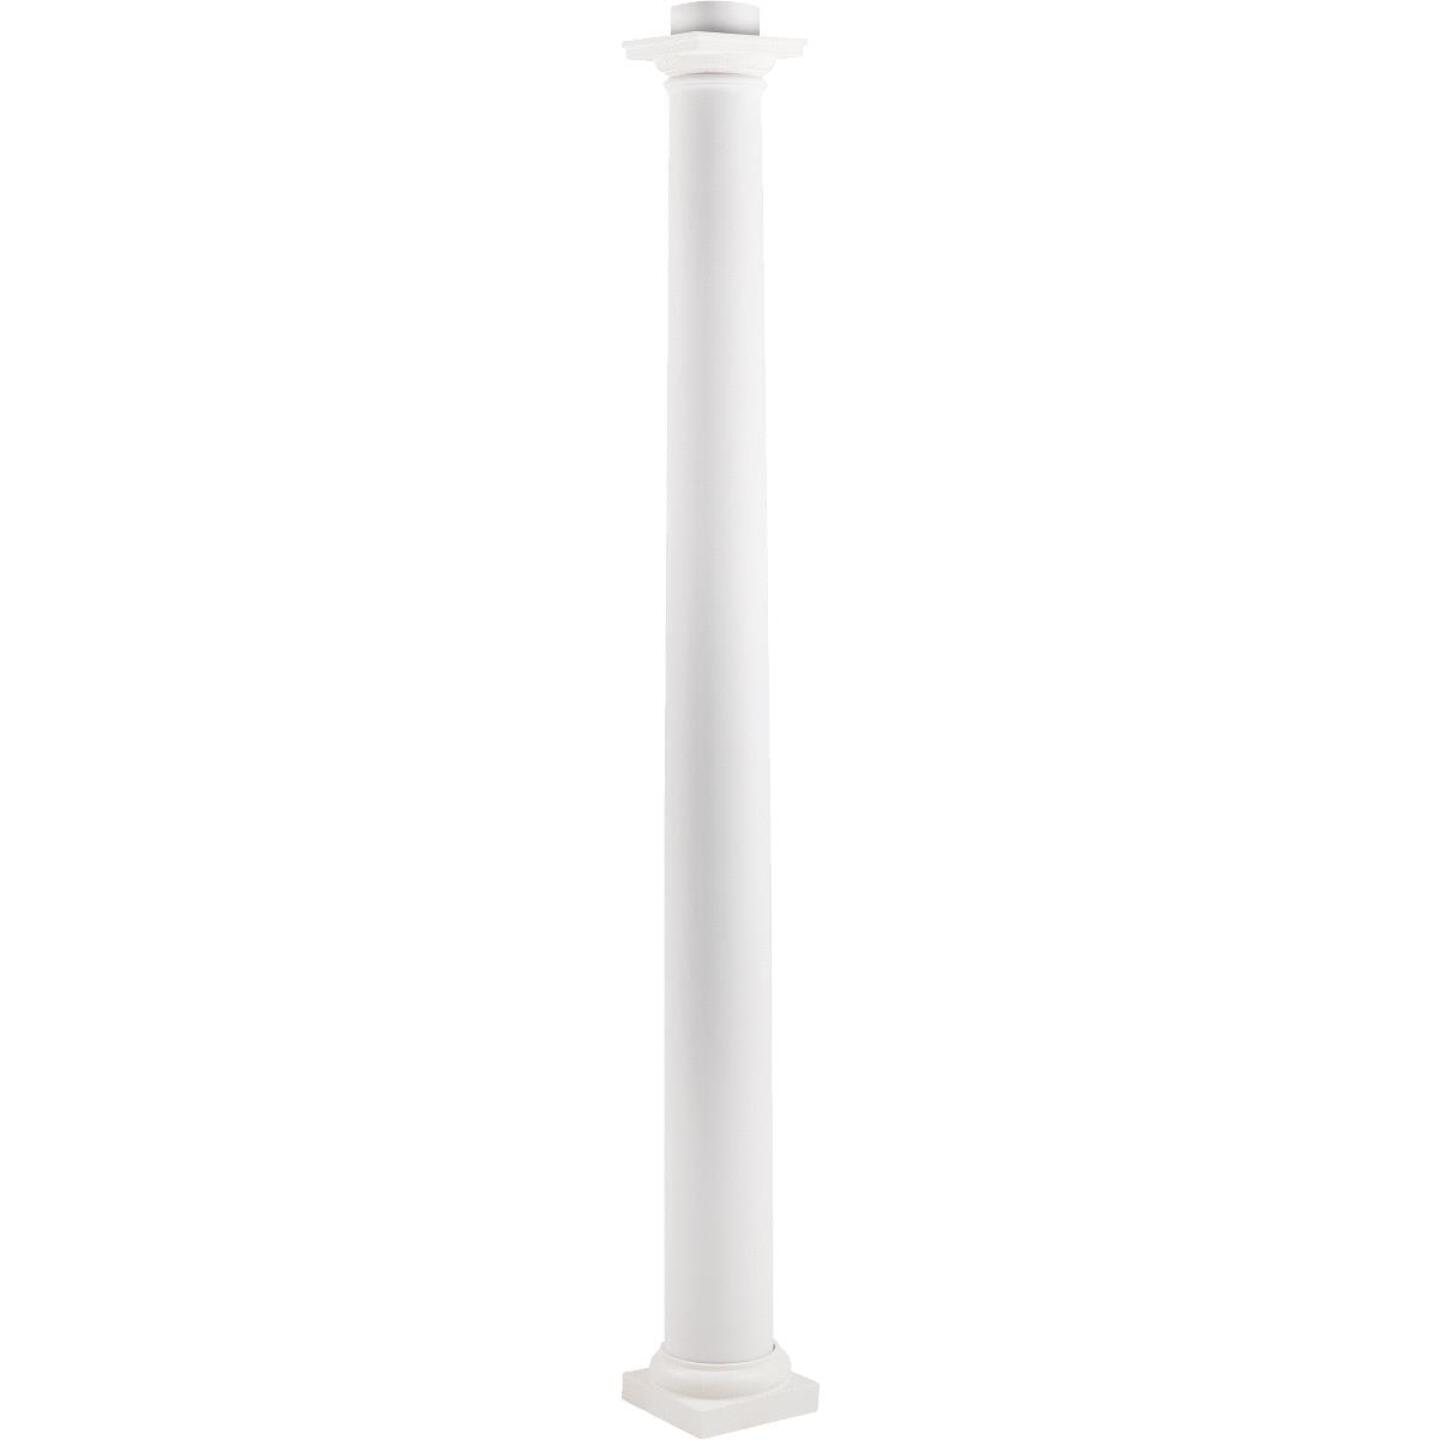 Crown Column Cap 9-1/2 In., Base 10-3/8 In. Unfinished Plastic Round Cap/Base Set Image 2